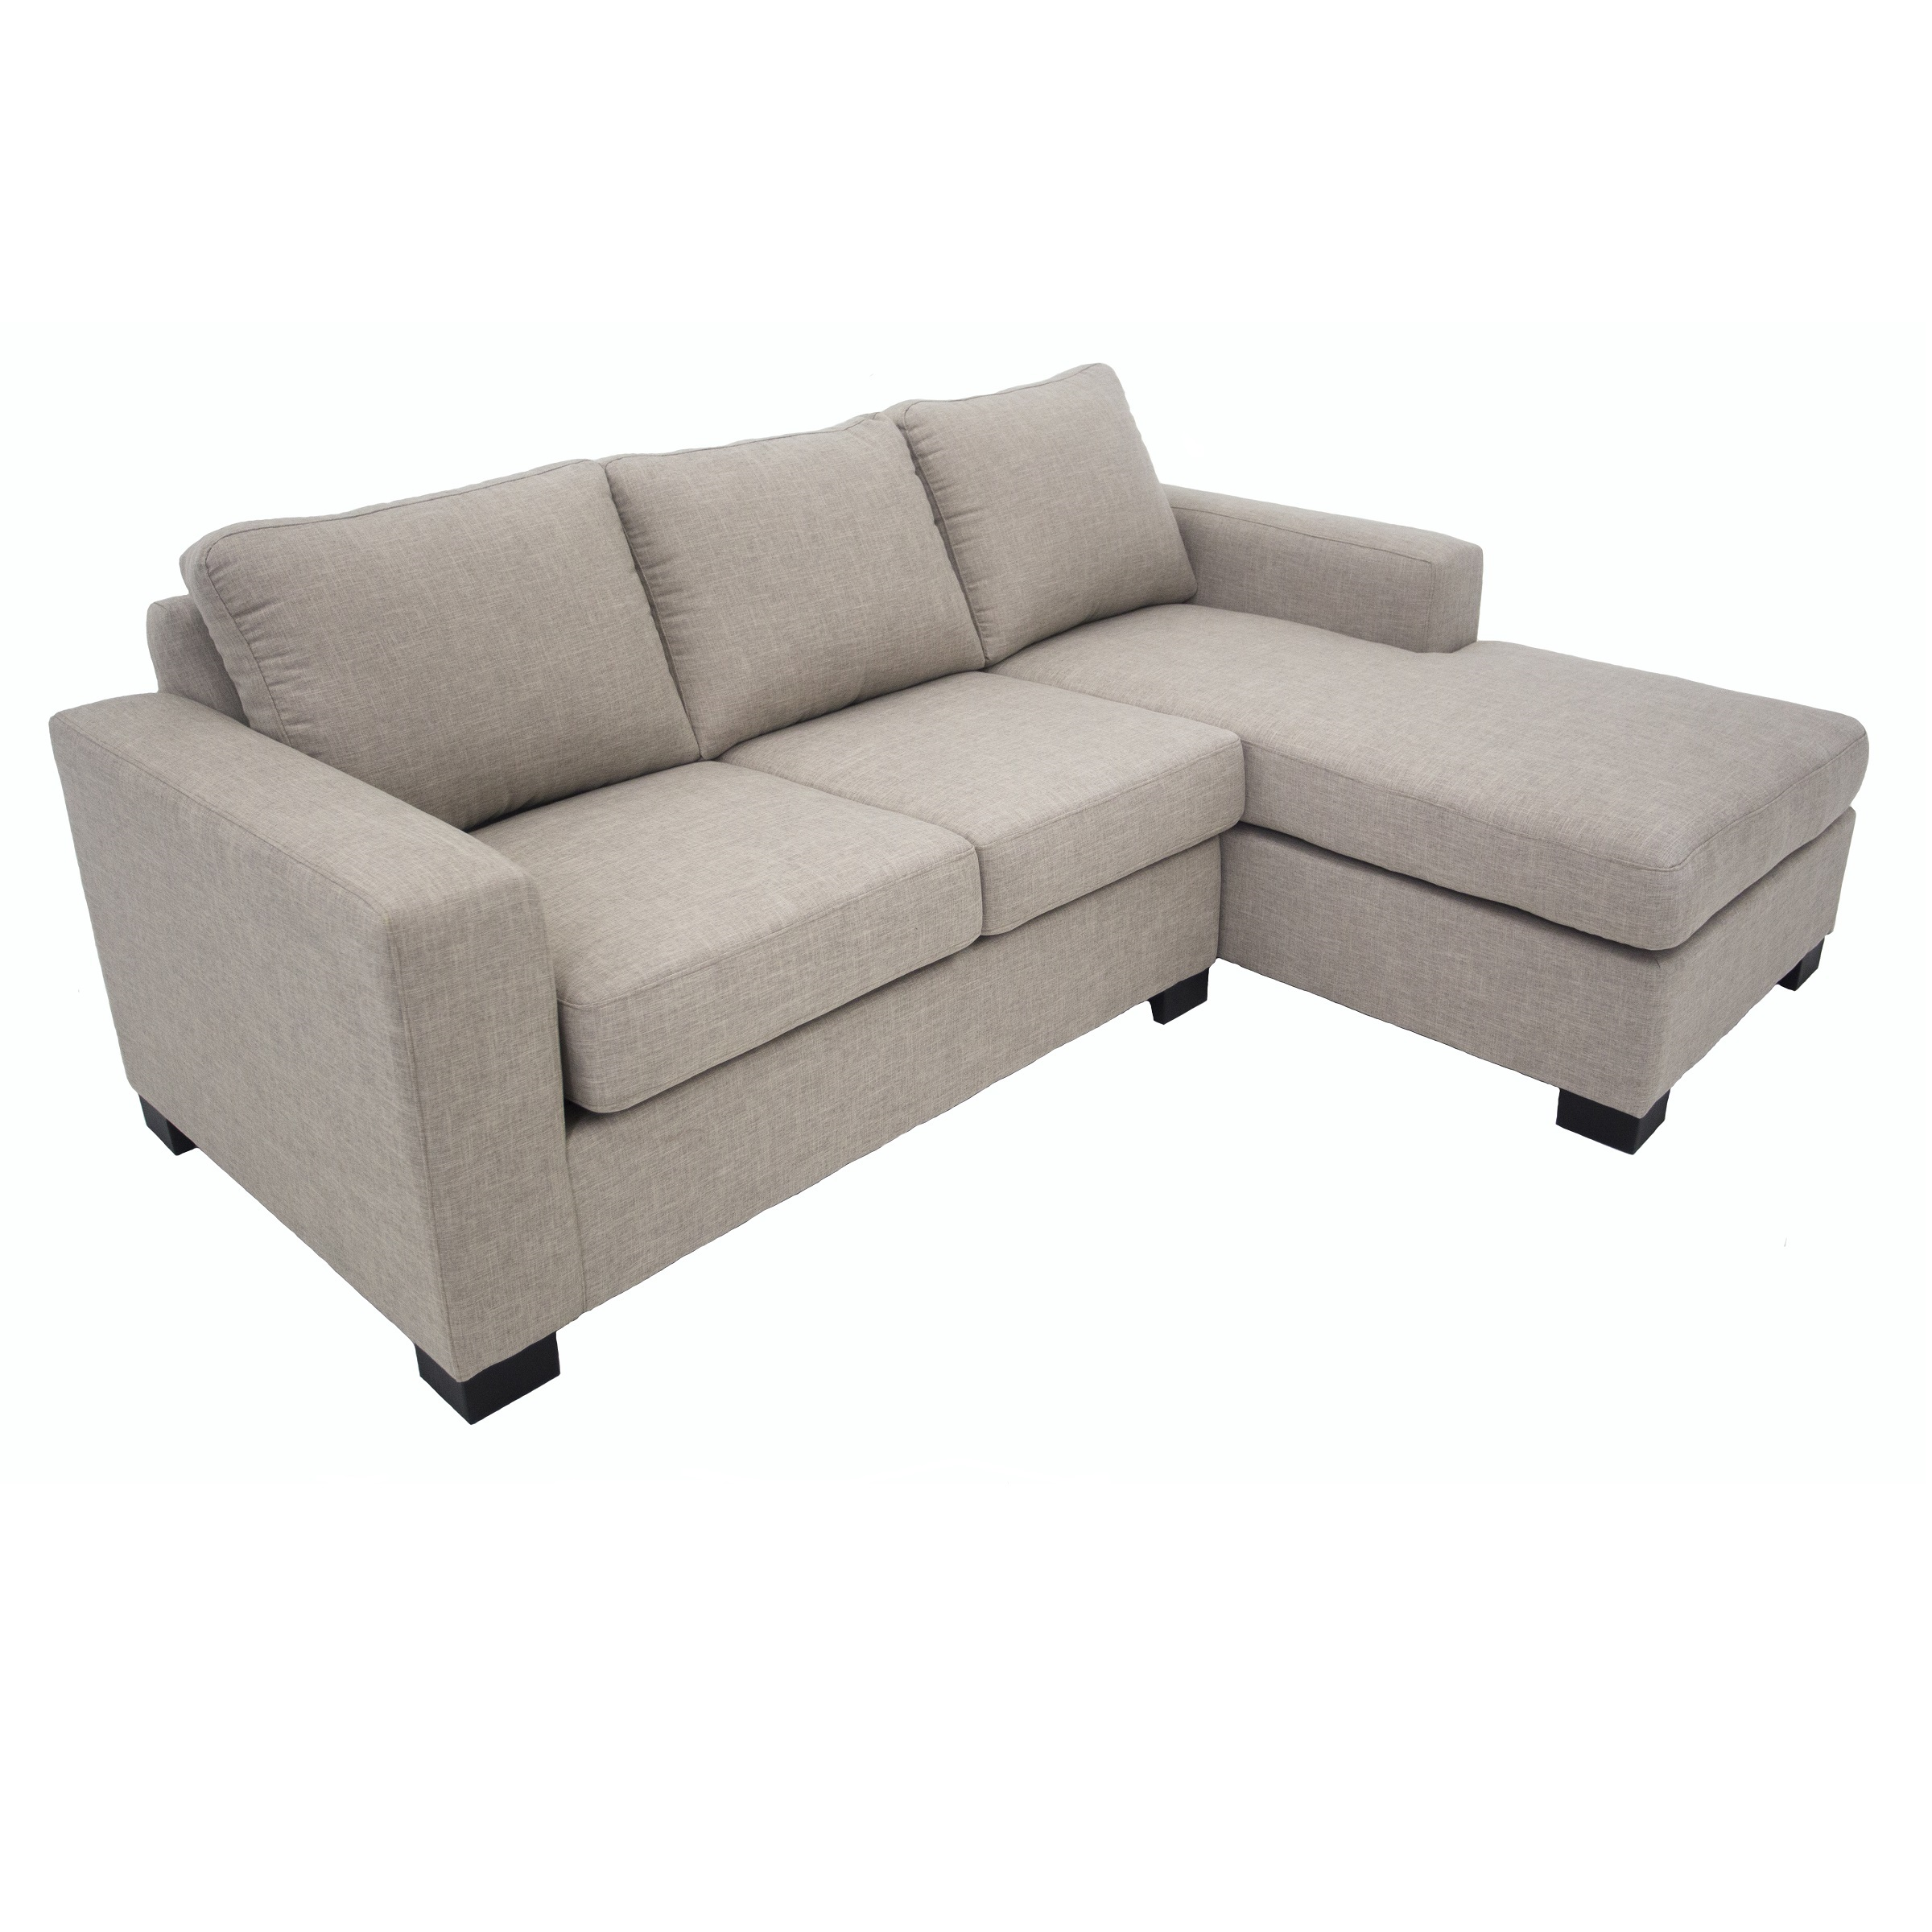 Jersey Lux Furniture Rentals